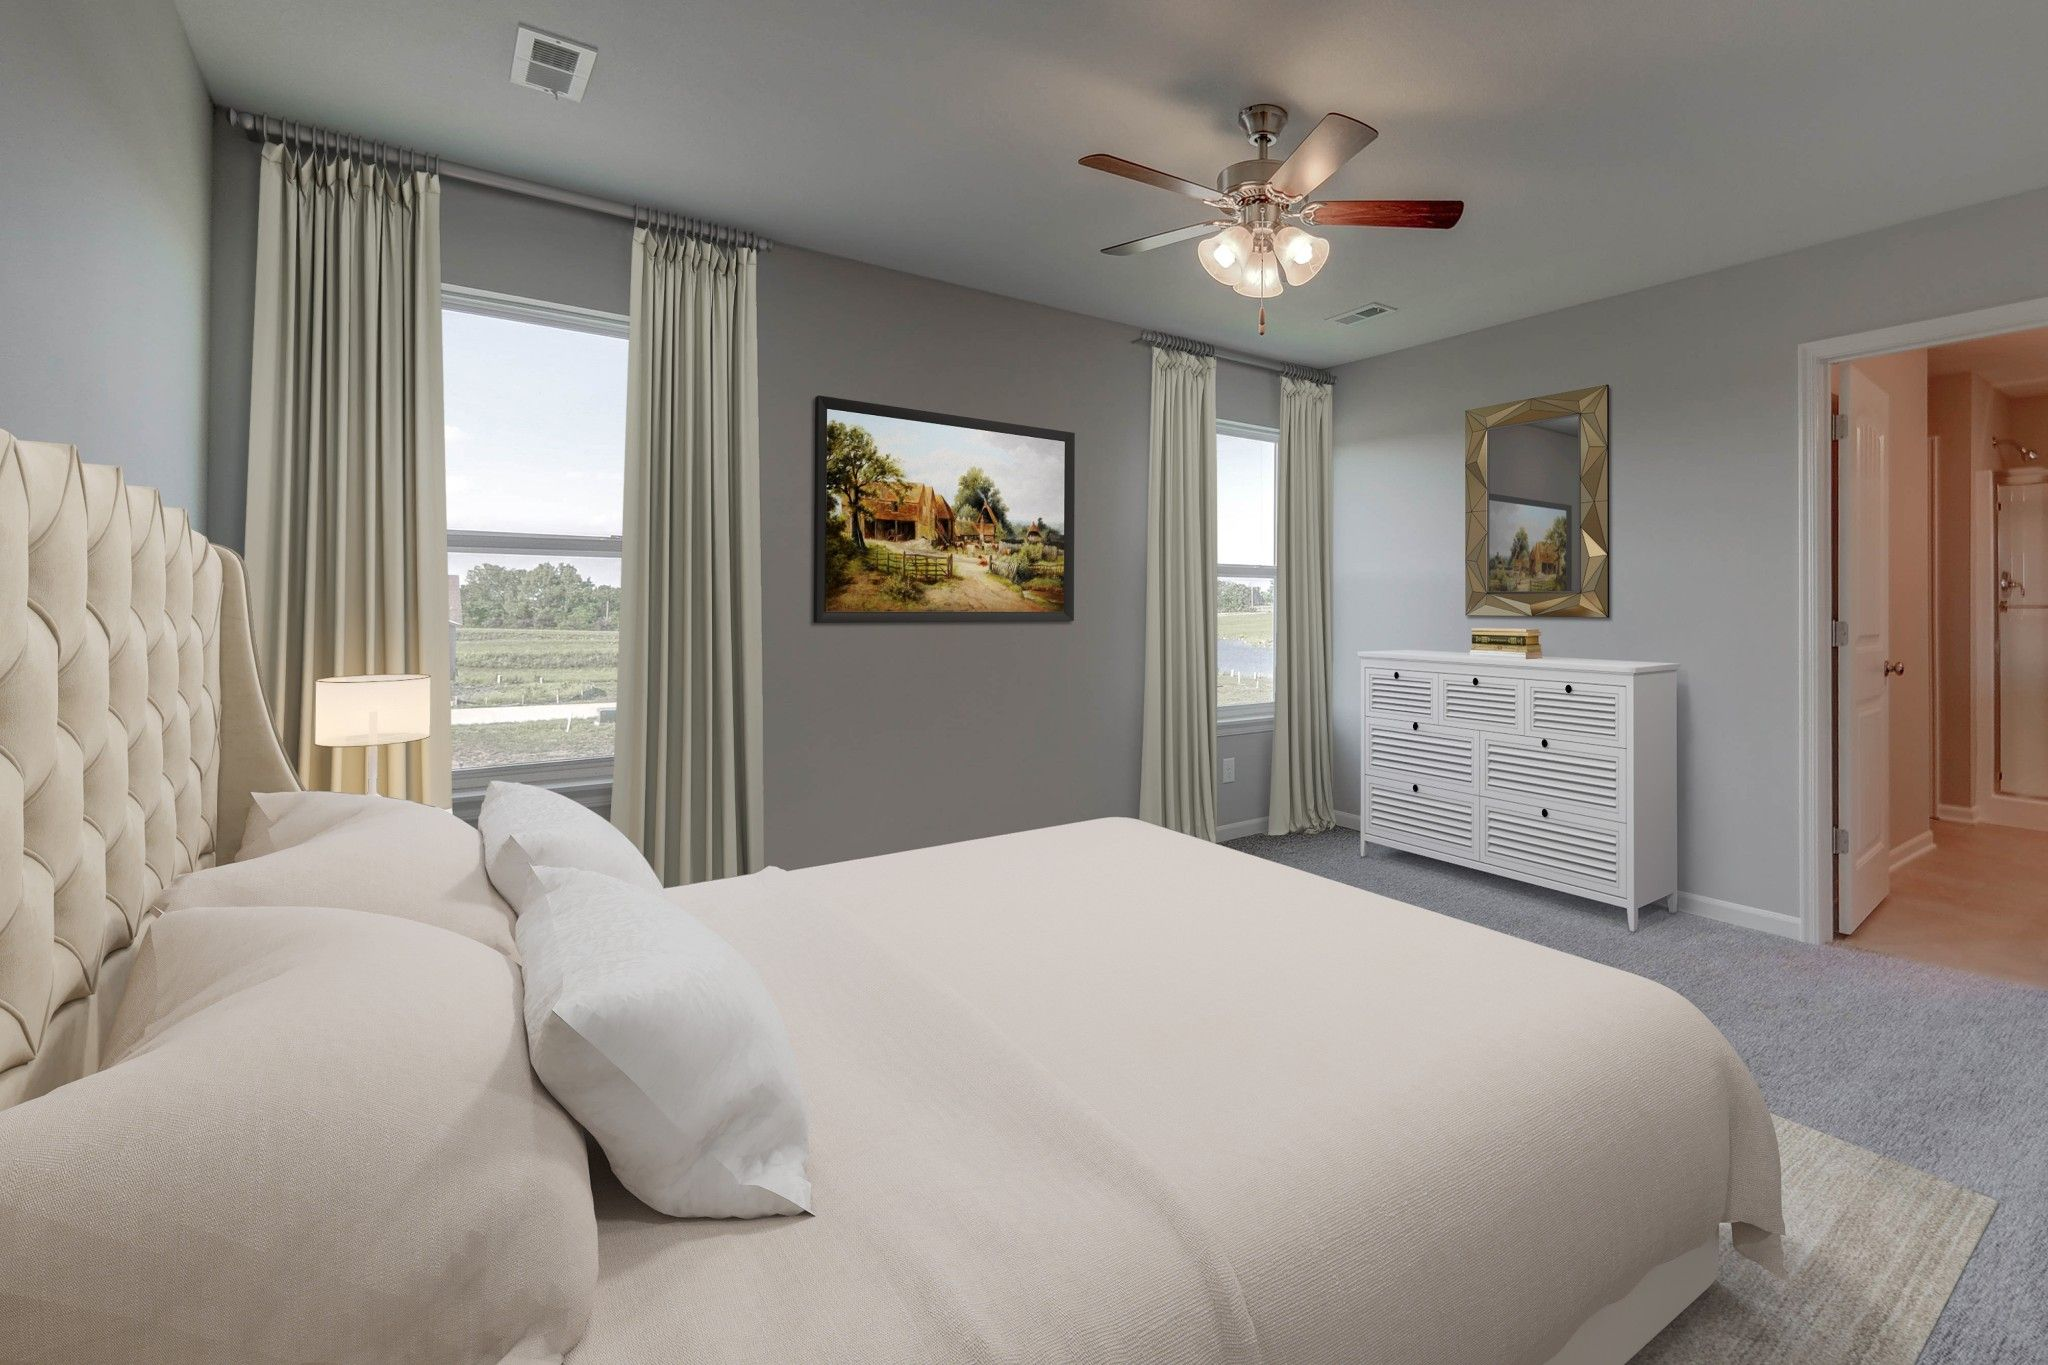 Bedroom featured in the Brookside - IA By Summit Homes in Des Moines, IA